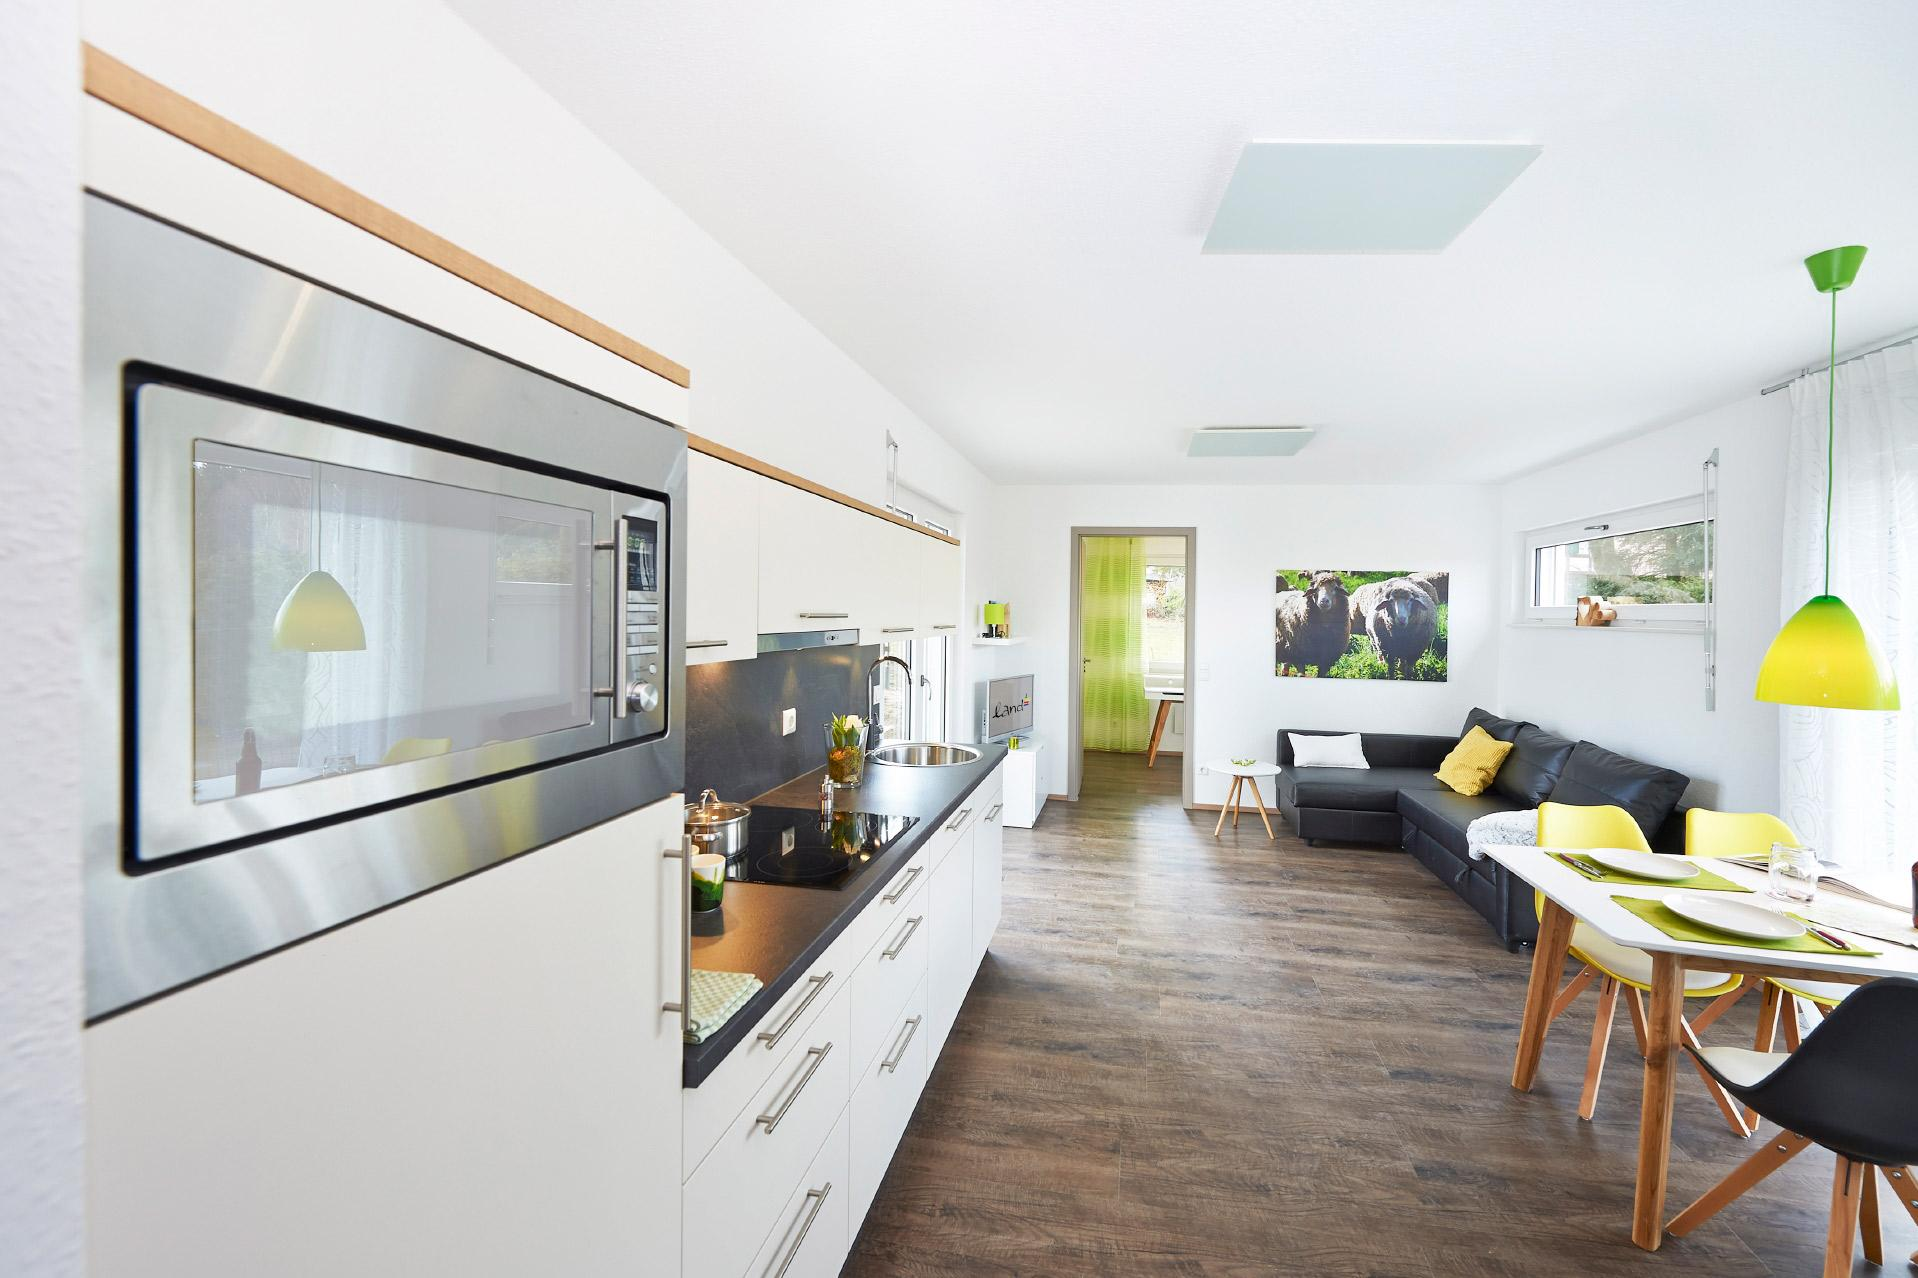 Appartement moderne dans le complexe FlyingSpace